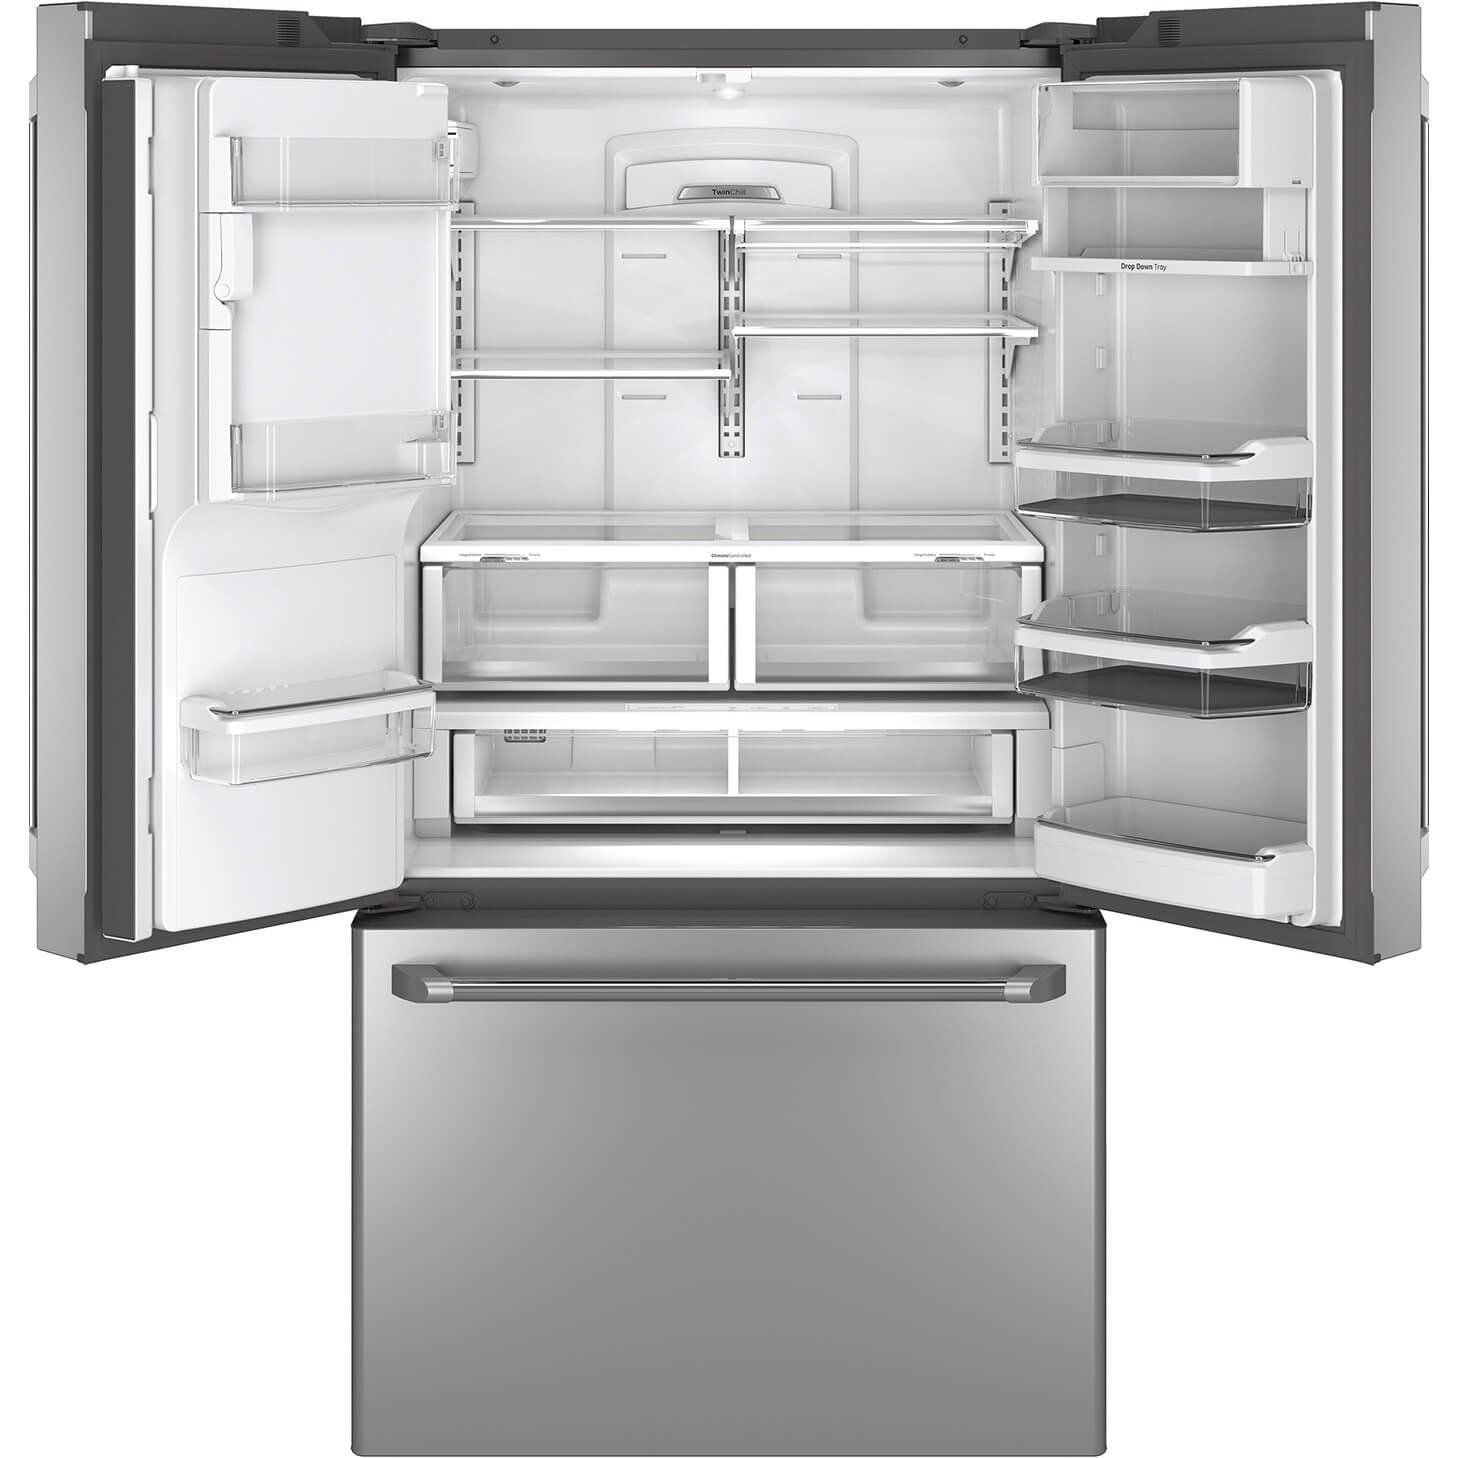 Amazon ge cafe cfe28tshss 36 278 cu ft capacity energy amazon ge cafe cfe28tshss 36 278 cu ft capacity energy star french door refrigerator with hot water dispenser in stainless steel appliances rubansaba